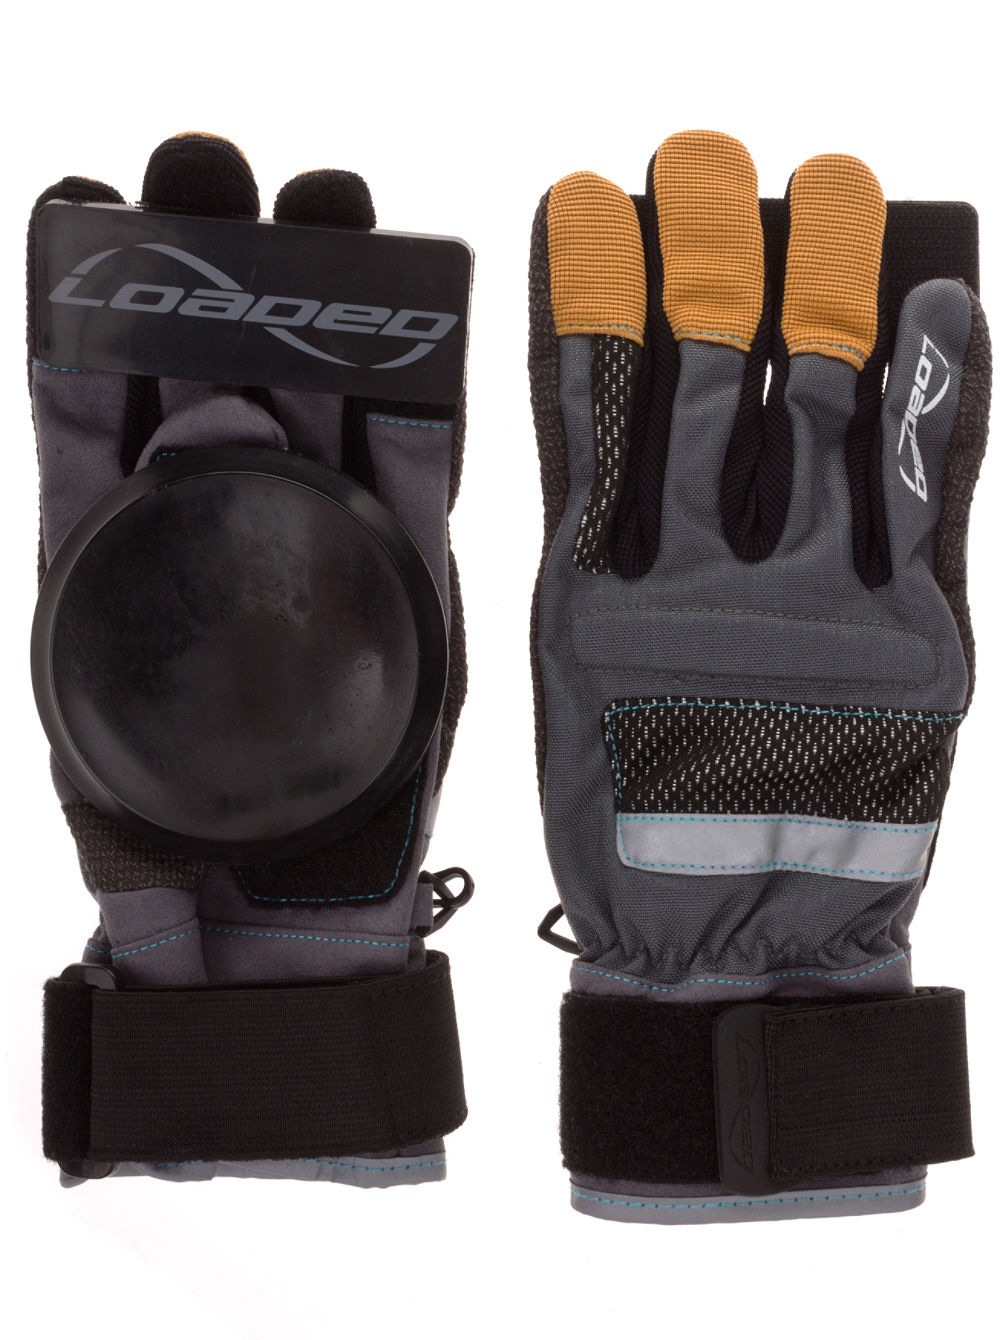 Freeride Slide V7 Gloves